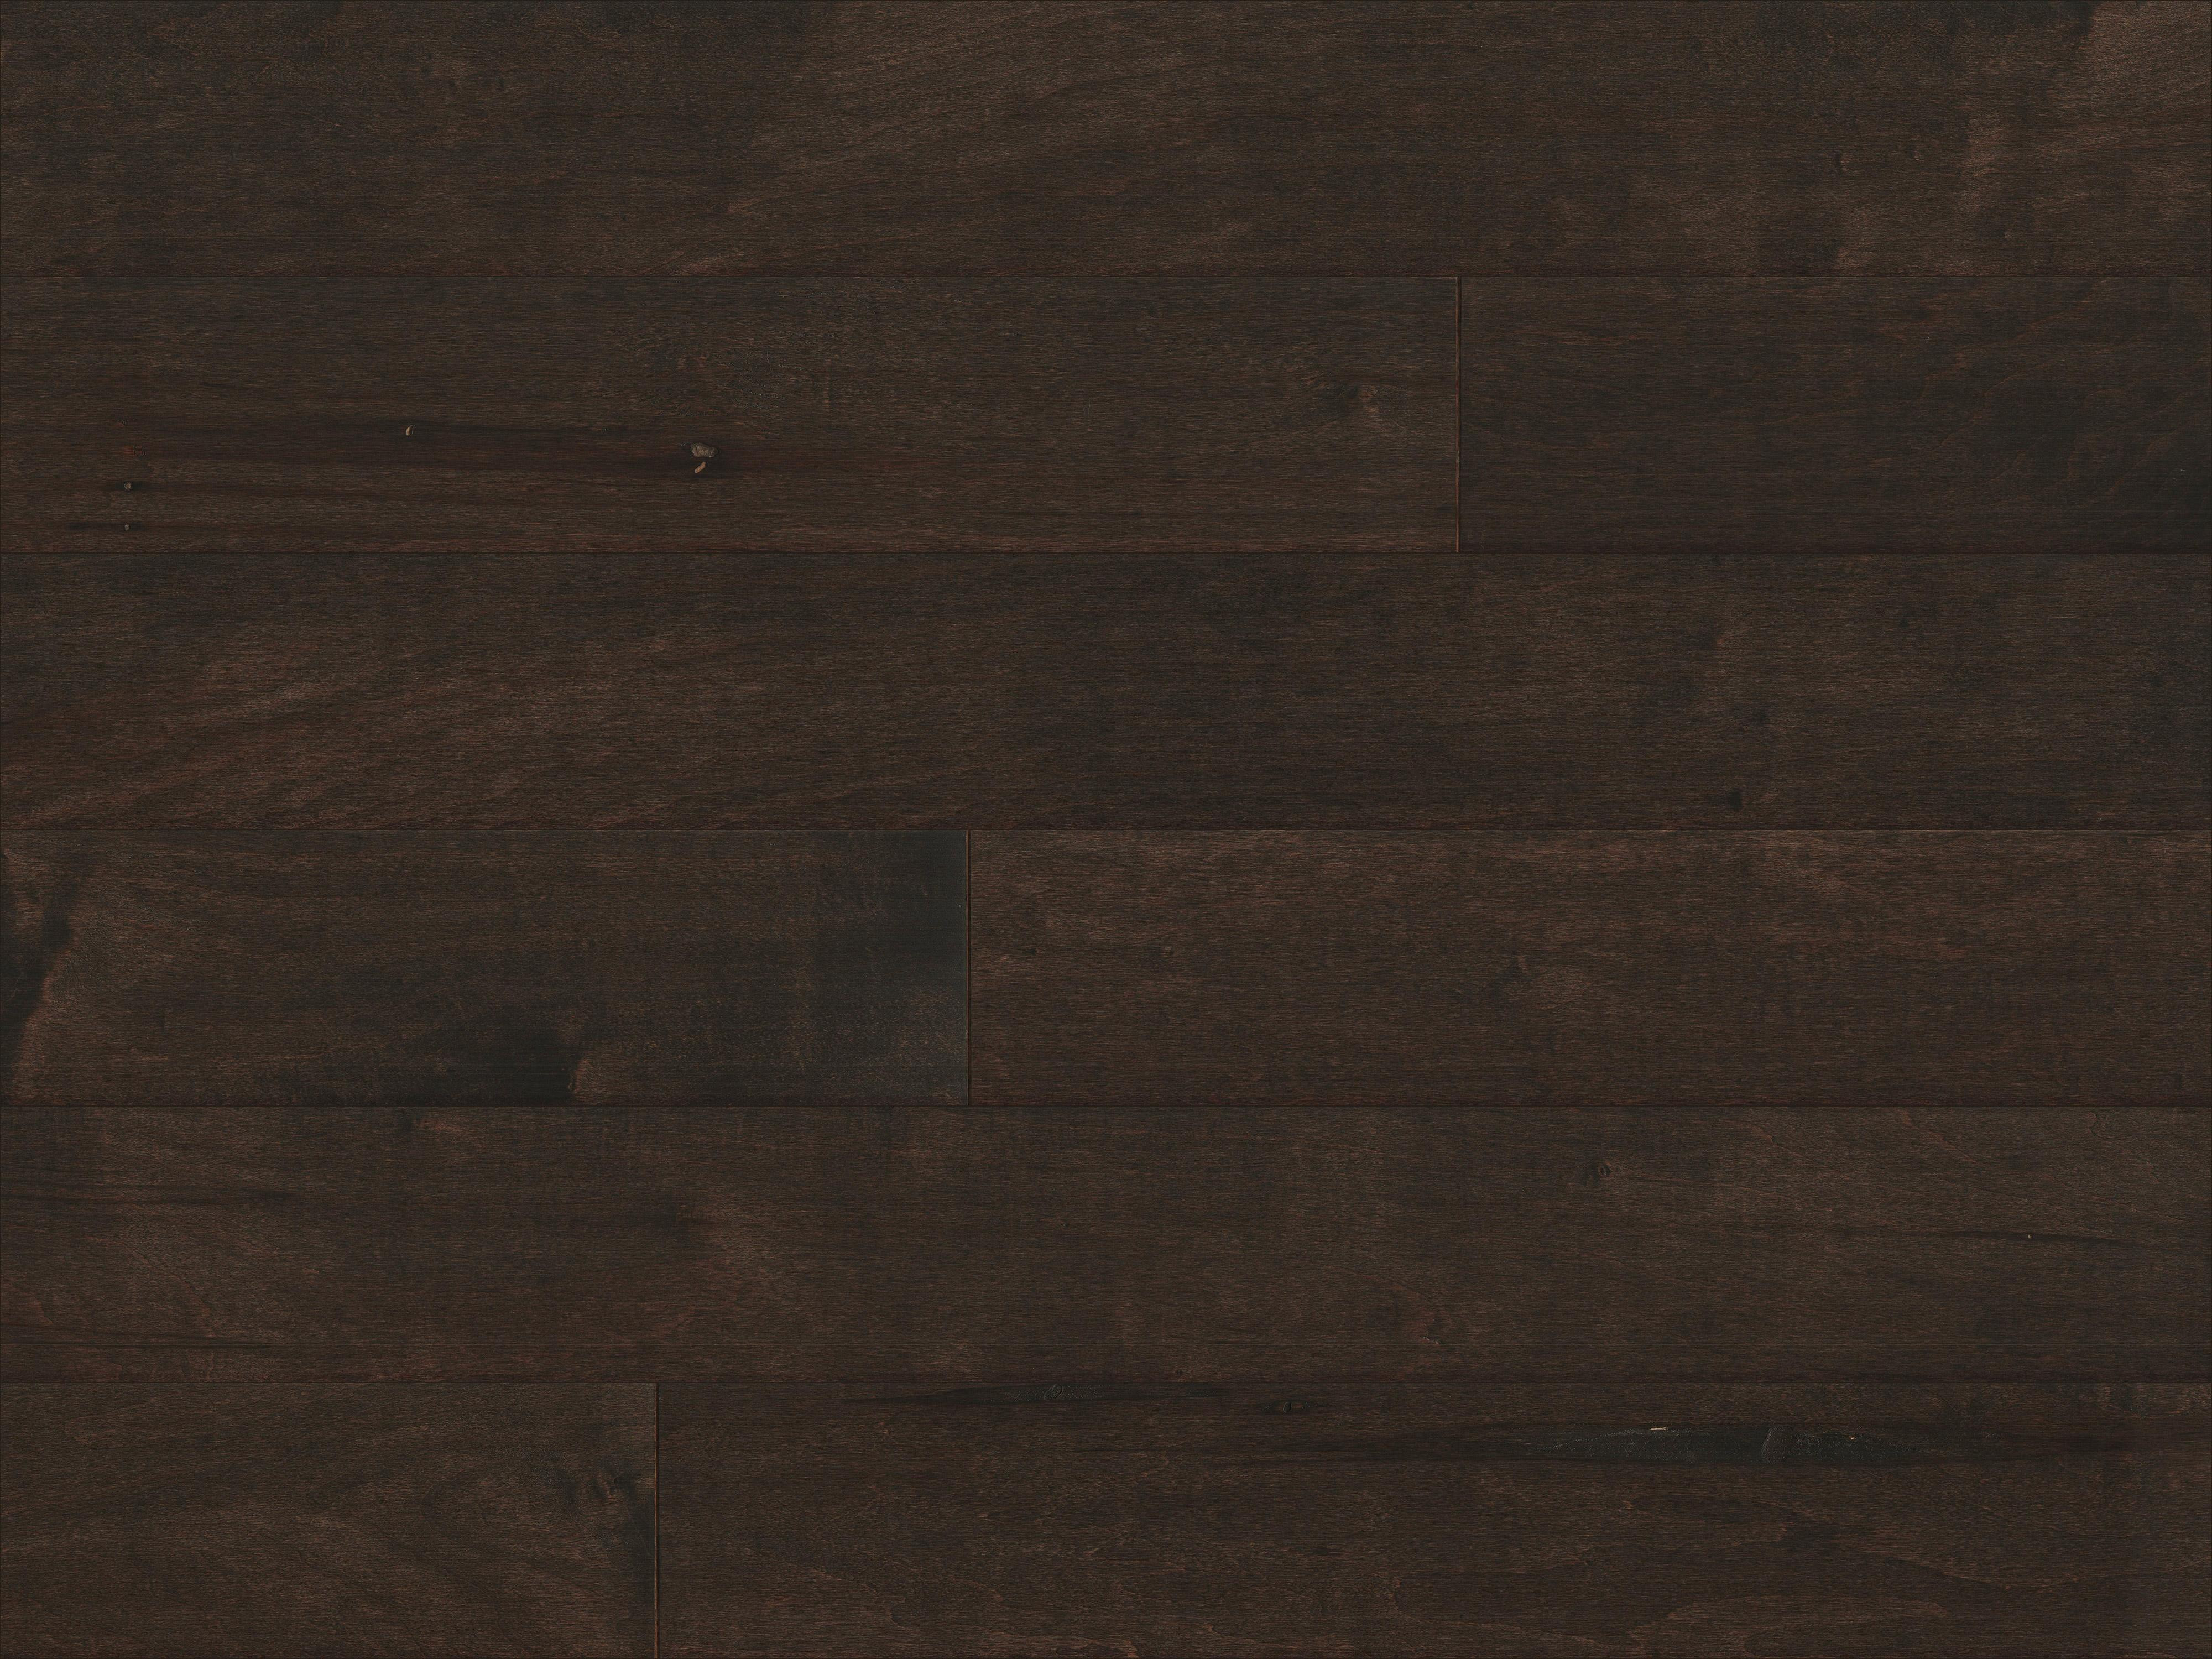 White Oak Engineered Hardwood Flooring Of Mullican Ridgecrest Maple Cappuccino 1 2 Thick 5 Wide Engineered with Regard to Mullican Ridgecrest Maple Cappuccino 1 2 Thick 5 Wide Engineered Hardwood Flooring